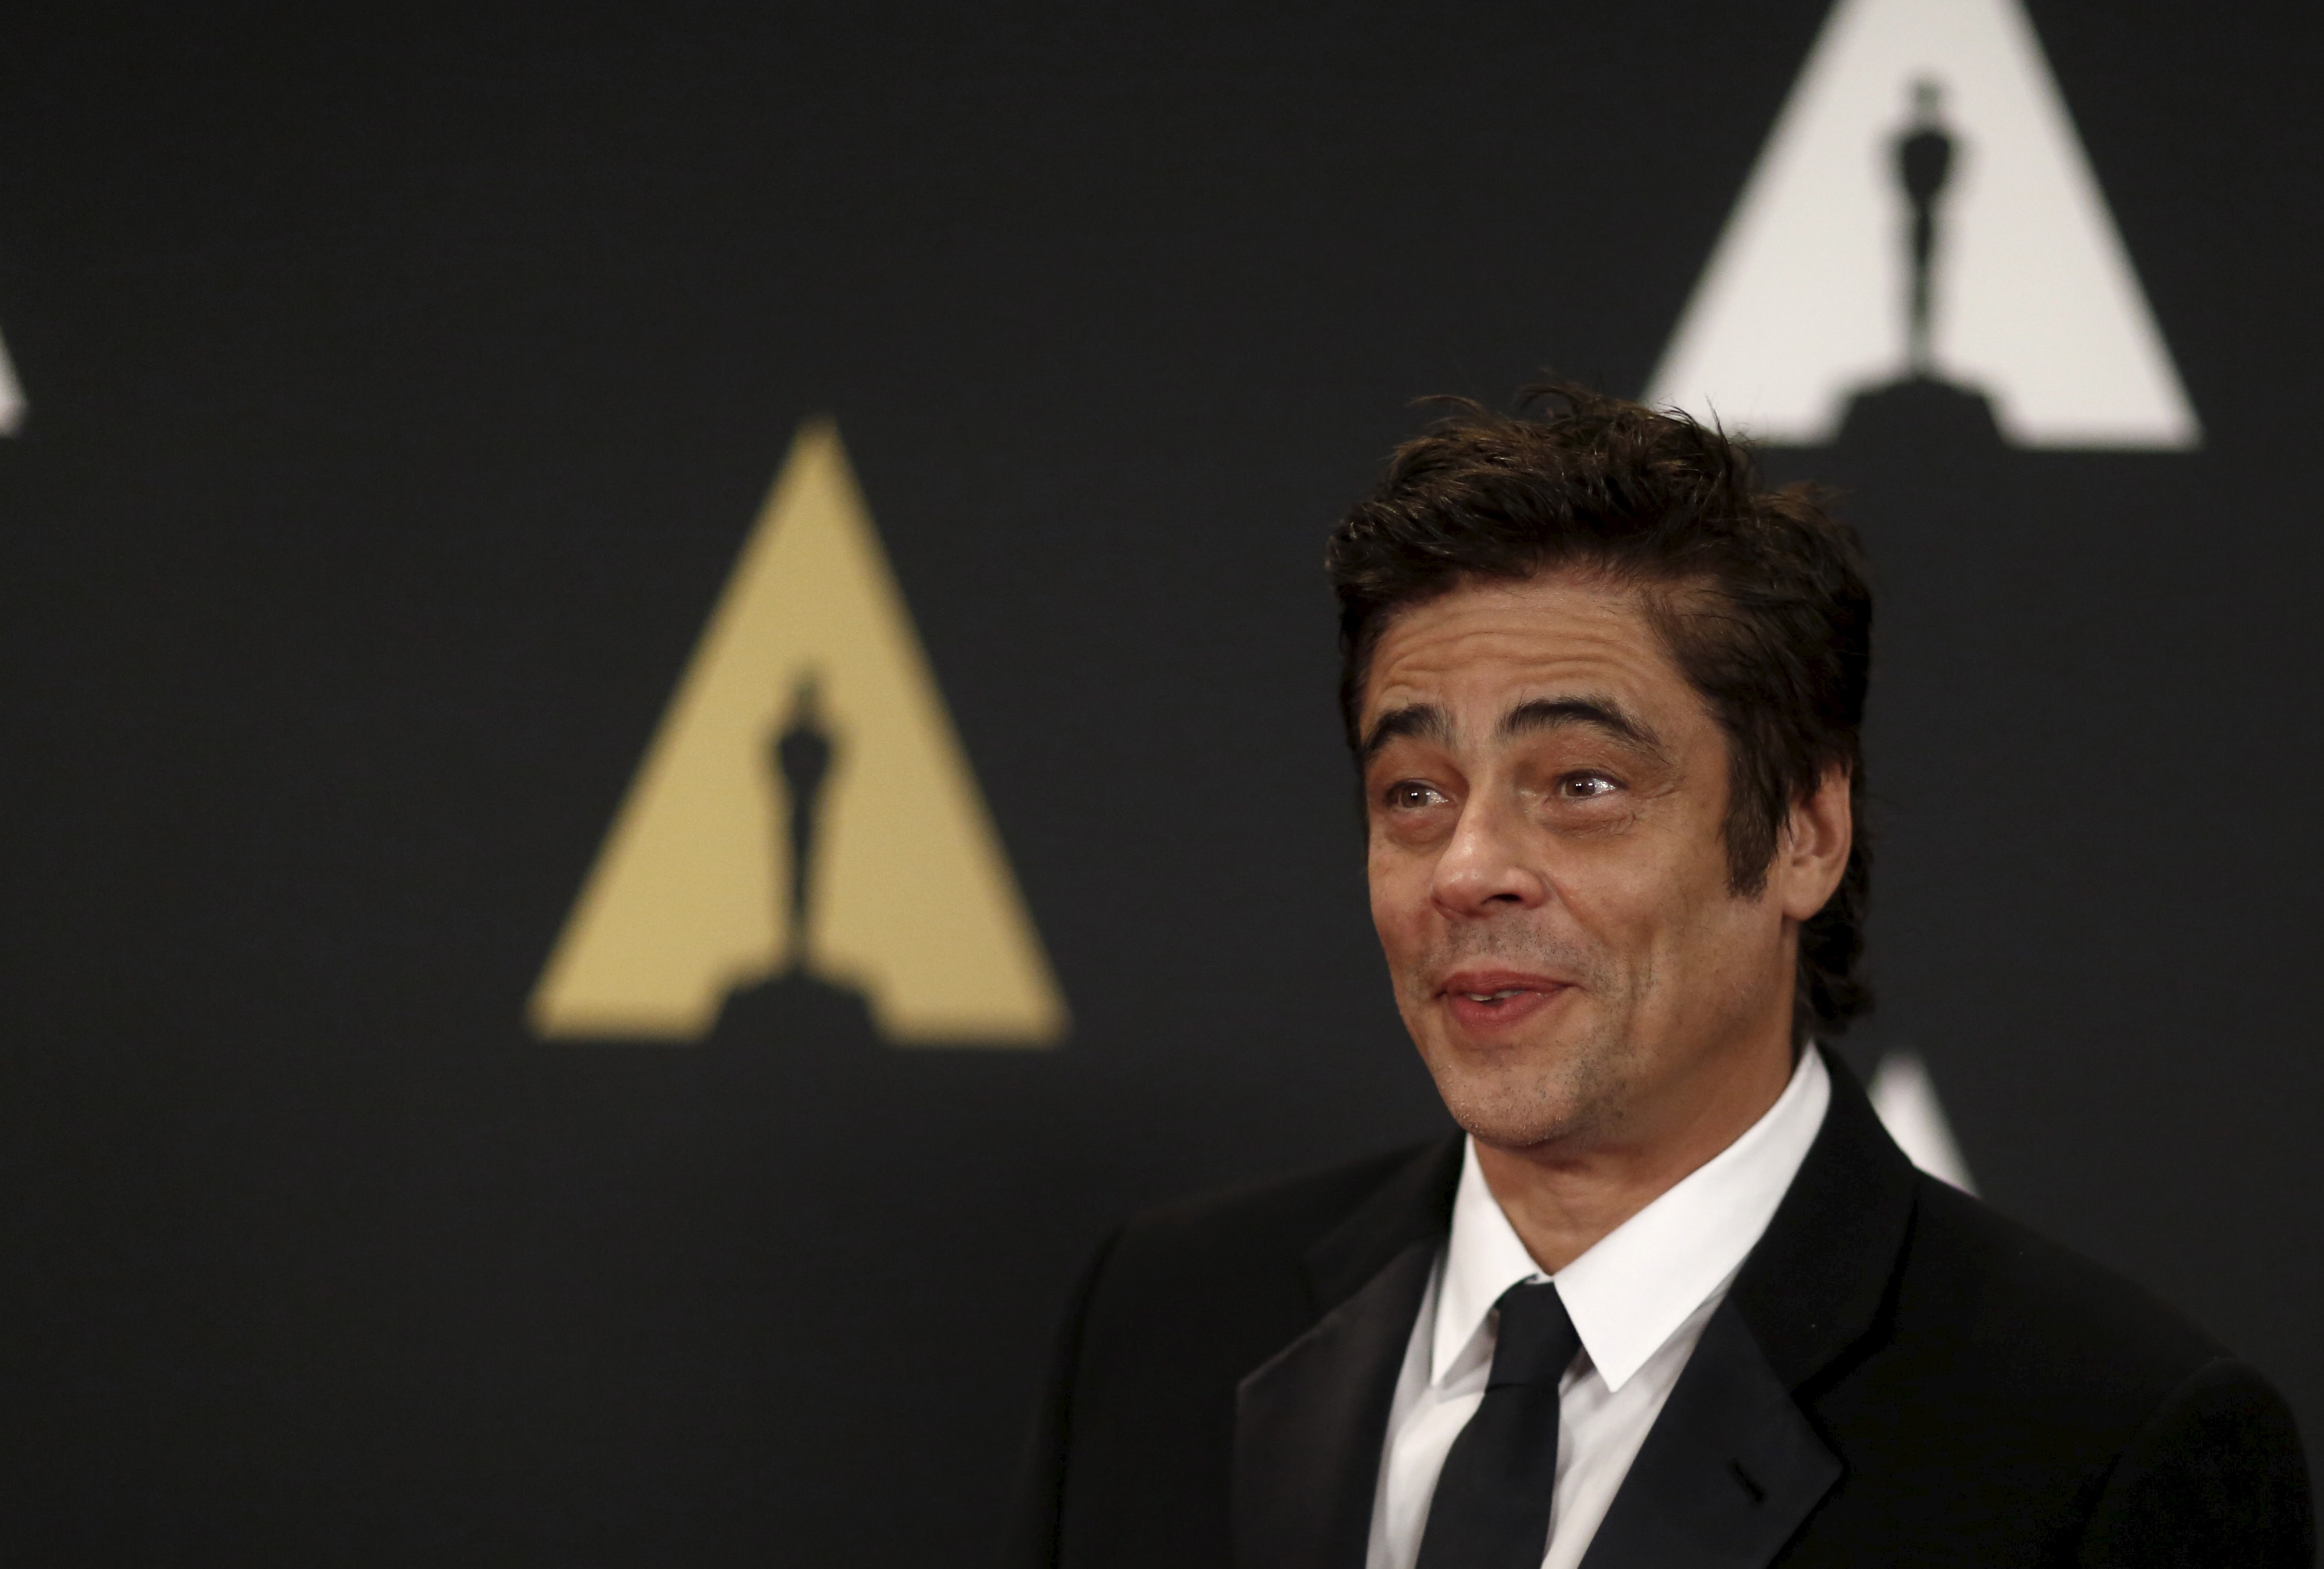 Benicio Del Toro Backgrounds